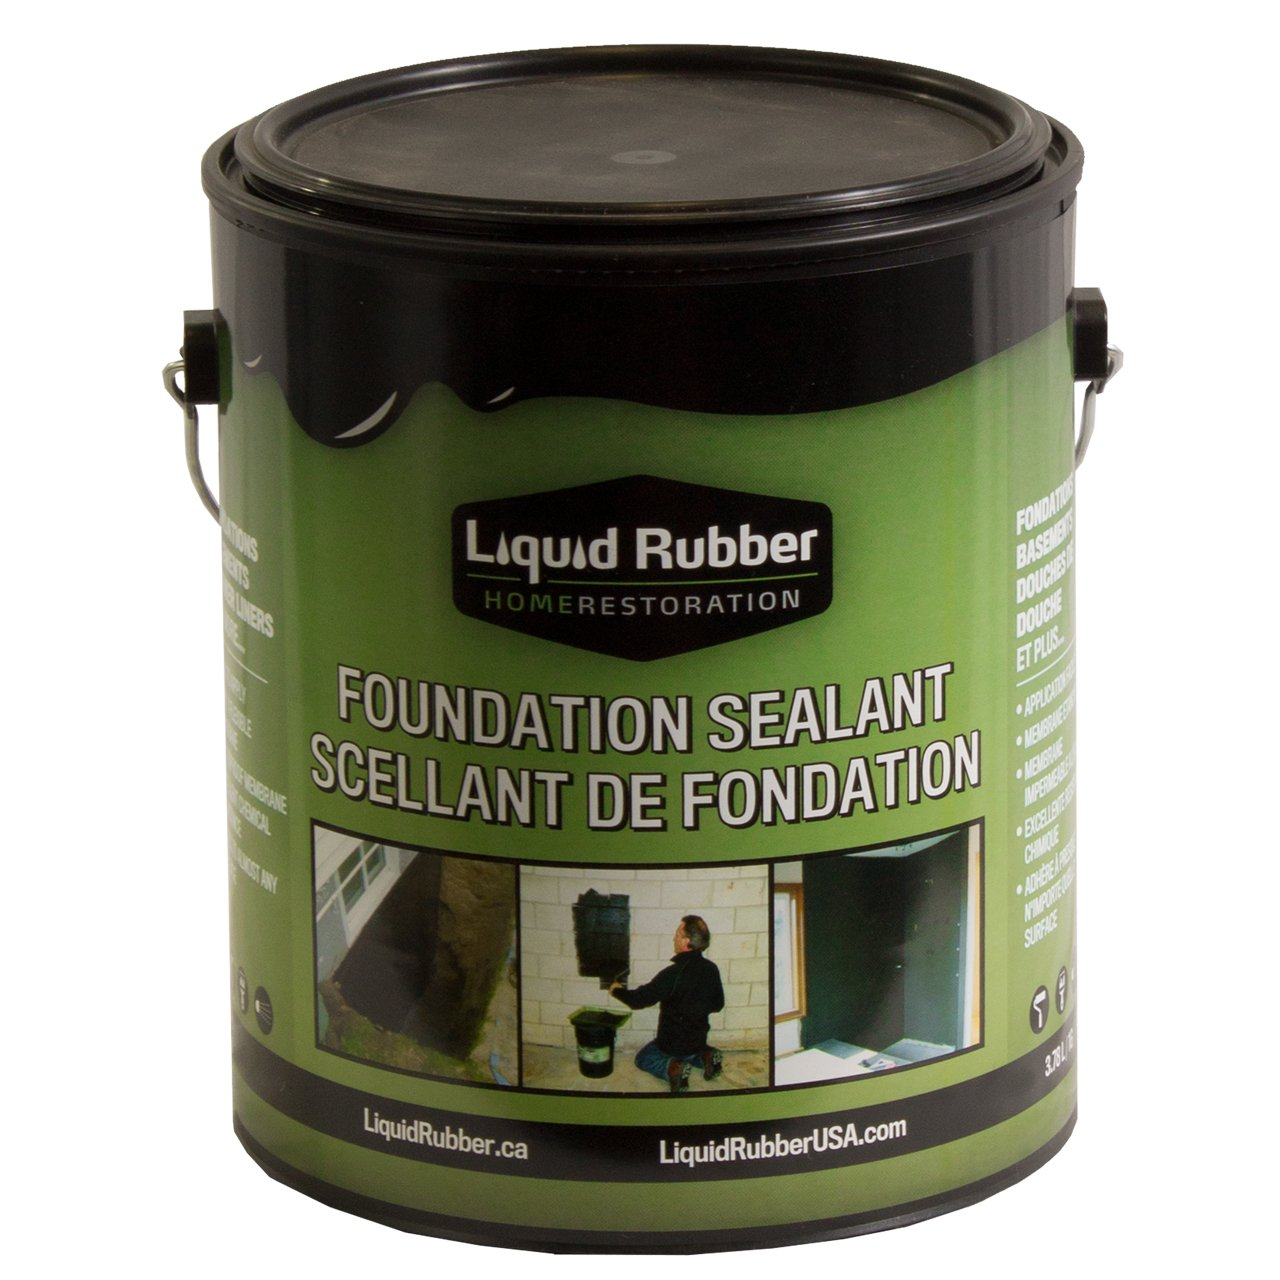 Liquid Rubber Foundation Sealant/Basement Coating - 1 Gallon - Black - Environmentally Friendly - Water Based - No Solvents, VOC's or Harmful Odors - No Mixing - Fix Leaks and Cracks - TOP SELLER by Liquid Rubber USA